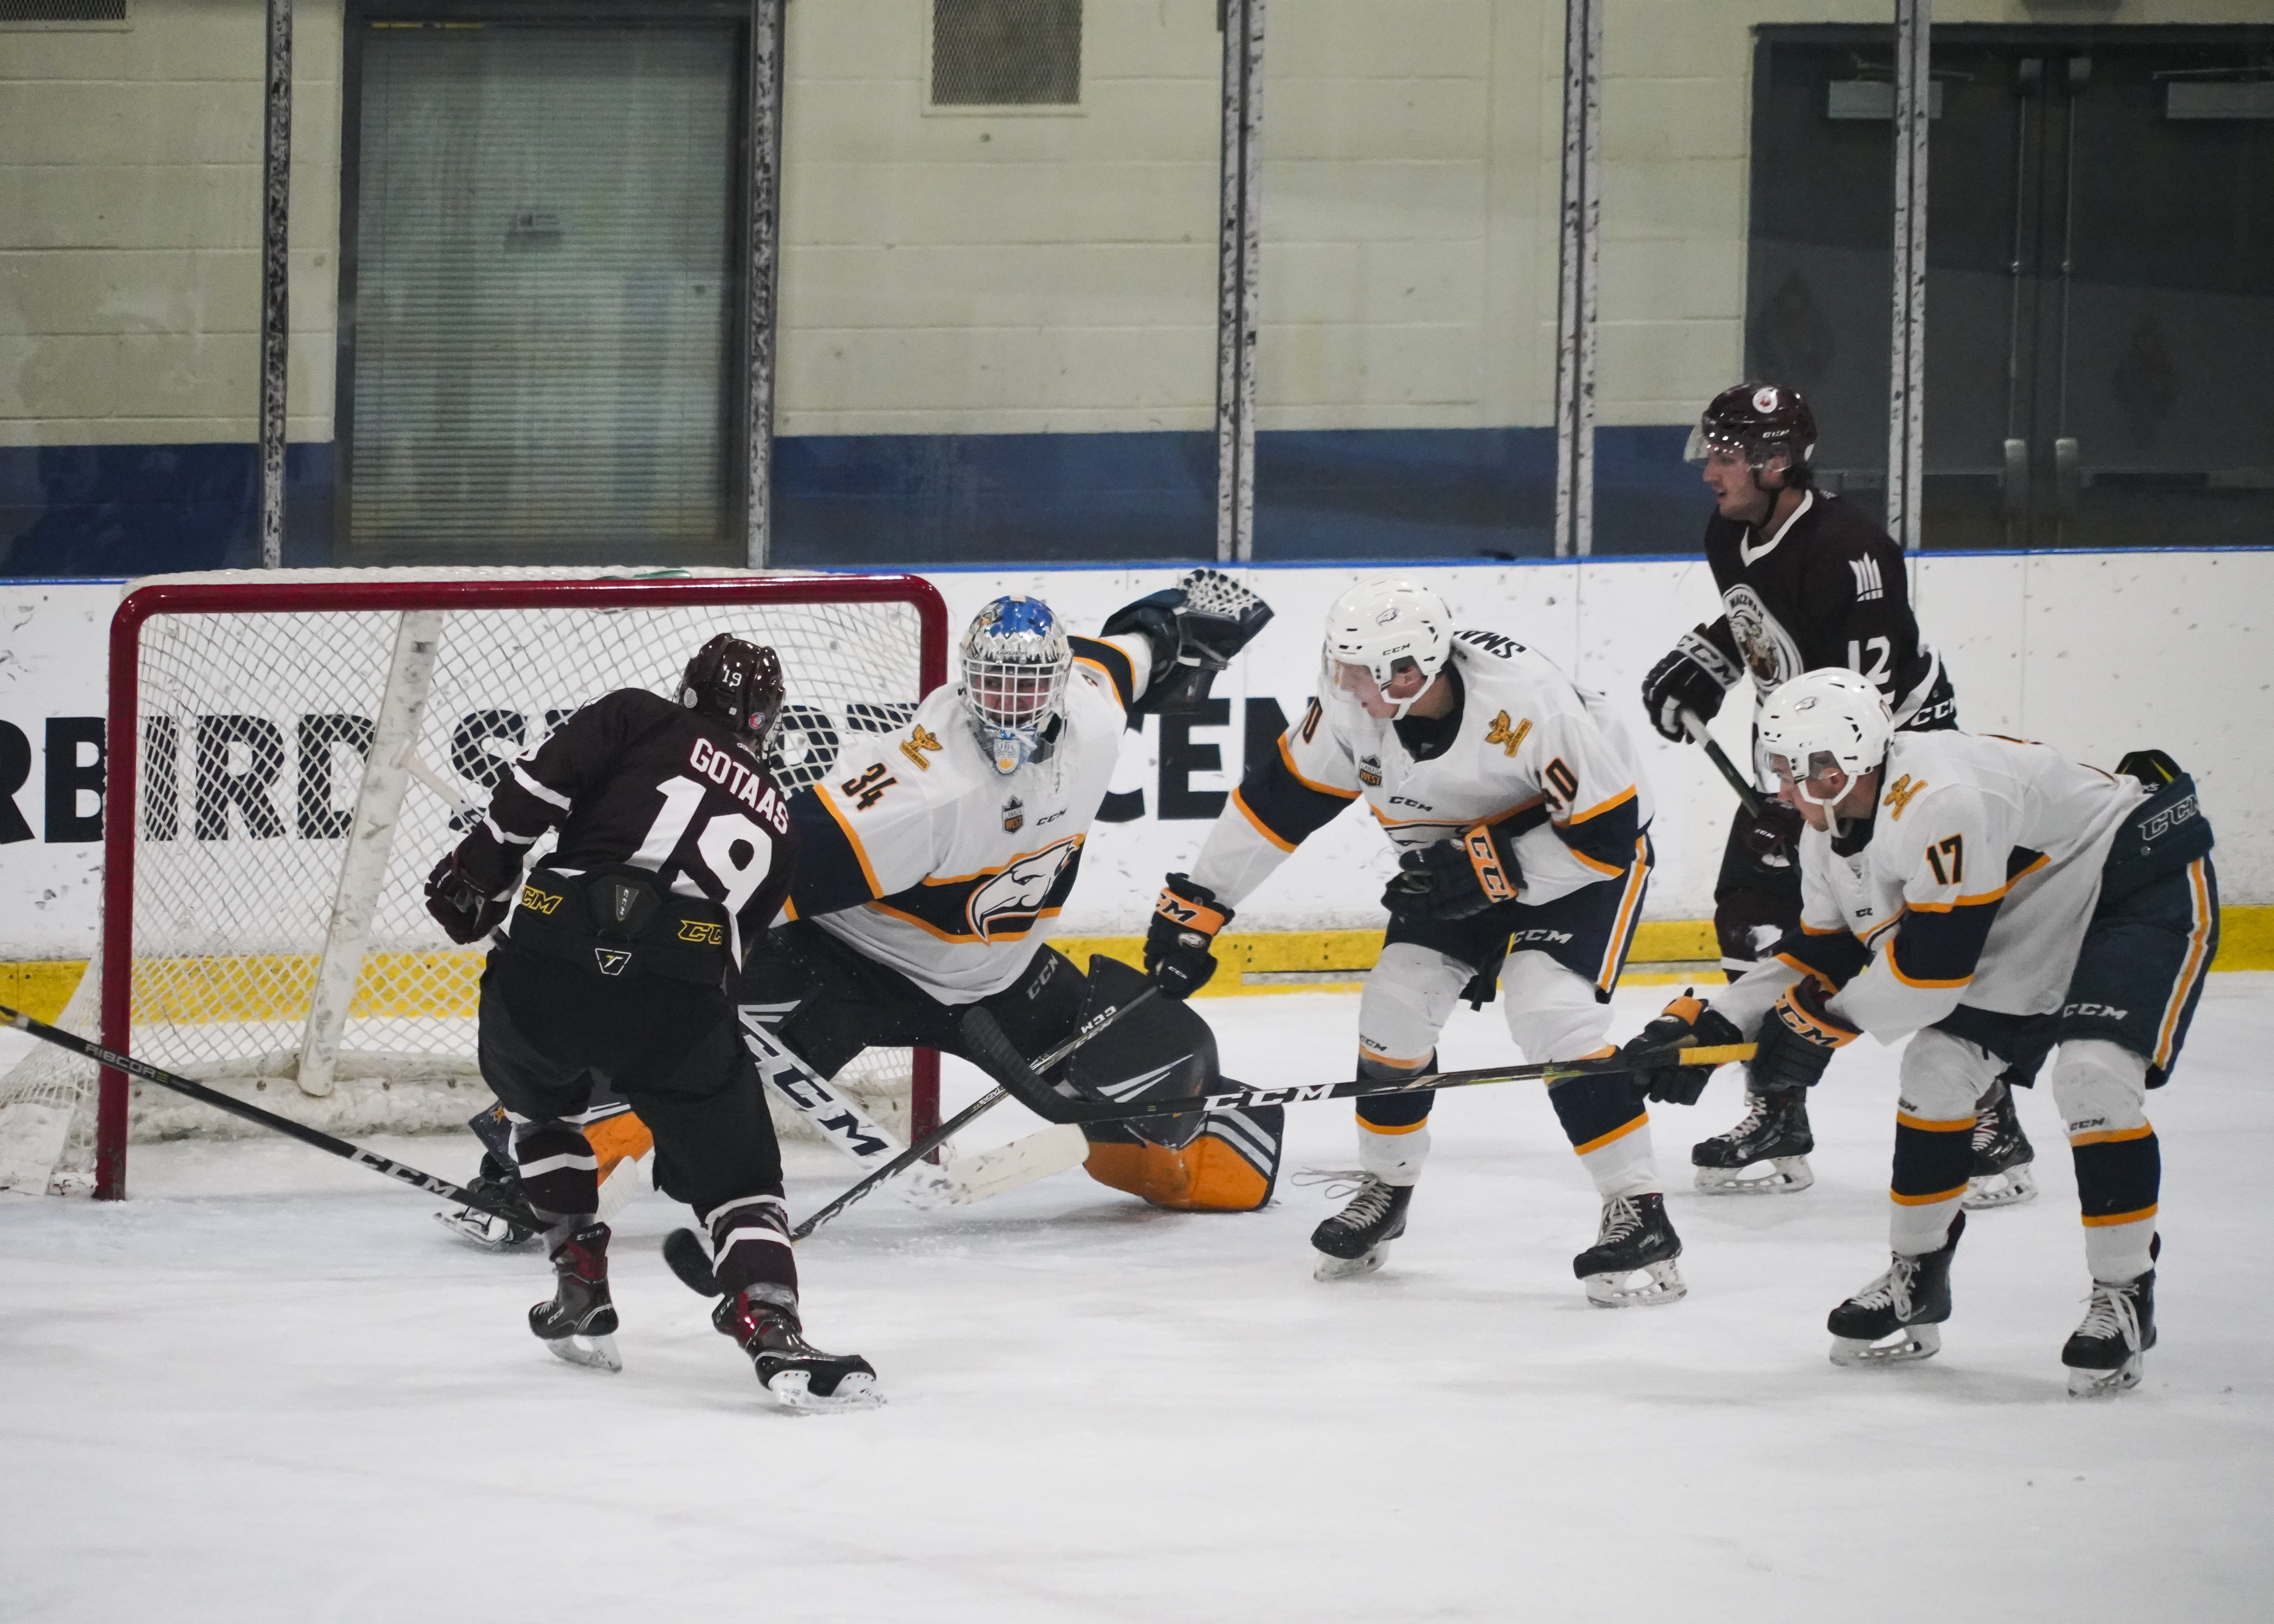 A MacEwan player takes a shot right in front of the T-Birds' net